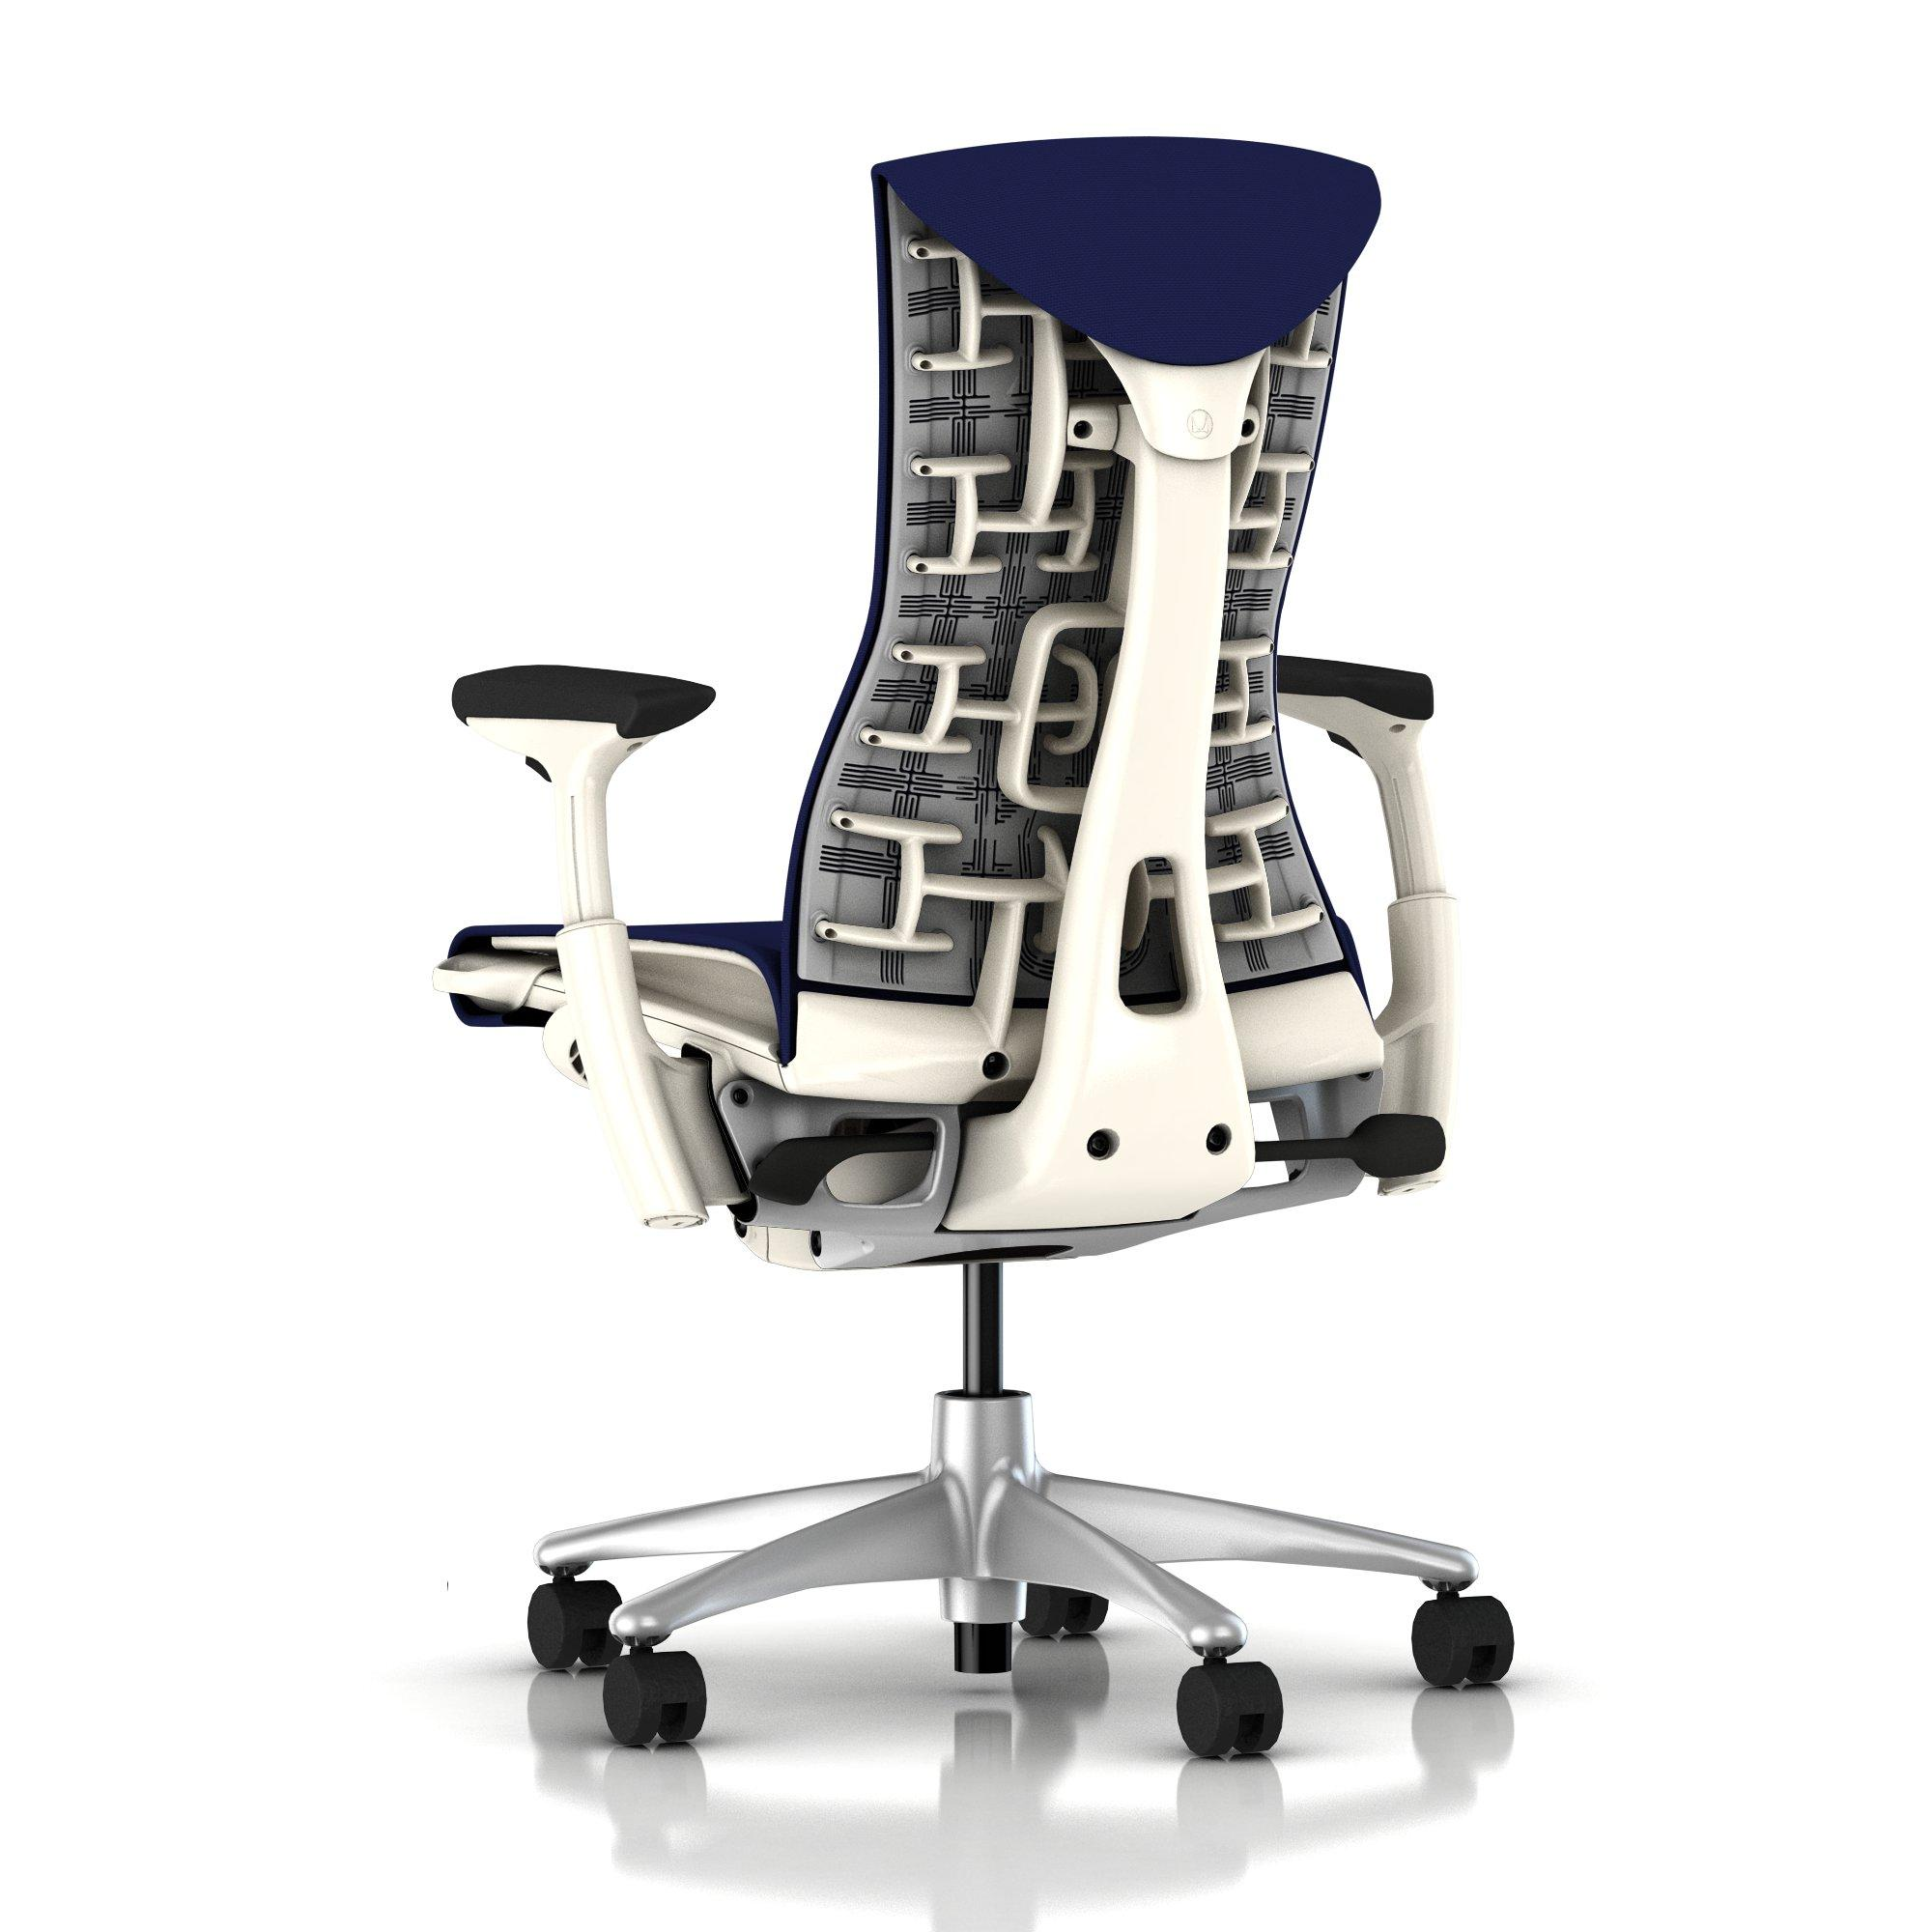 Herman Miller Embody Chair Twilight Blue Rhythm with White Frame